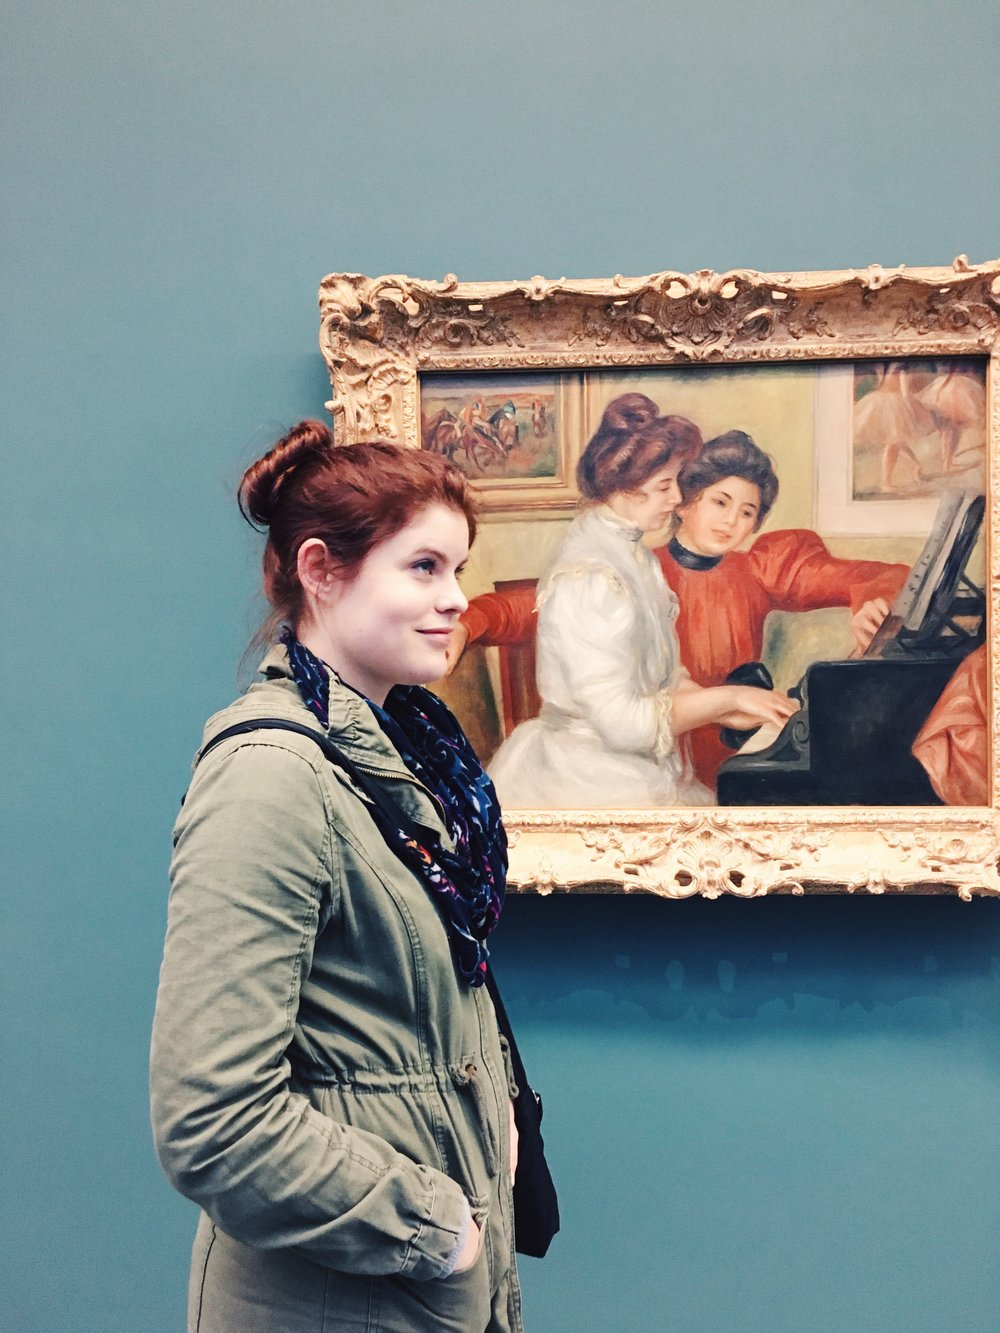 At L'Orangerie. I was telling her she looked just a bit like the woman in the portrait...